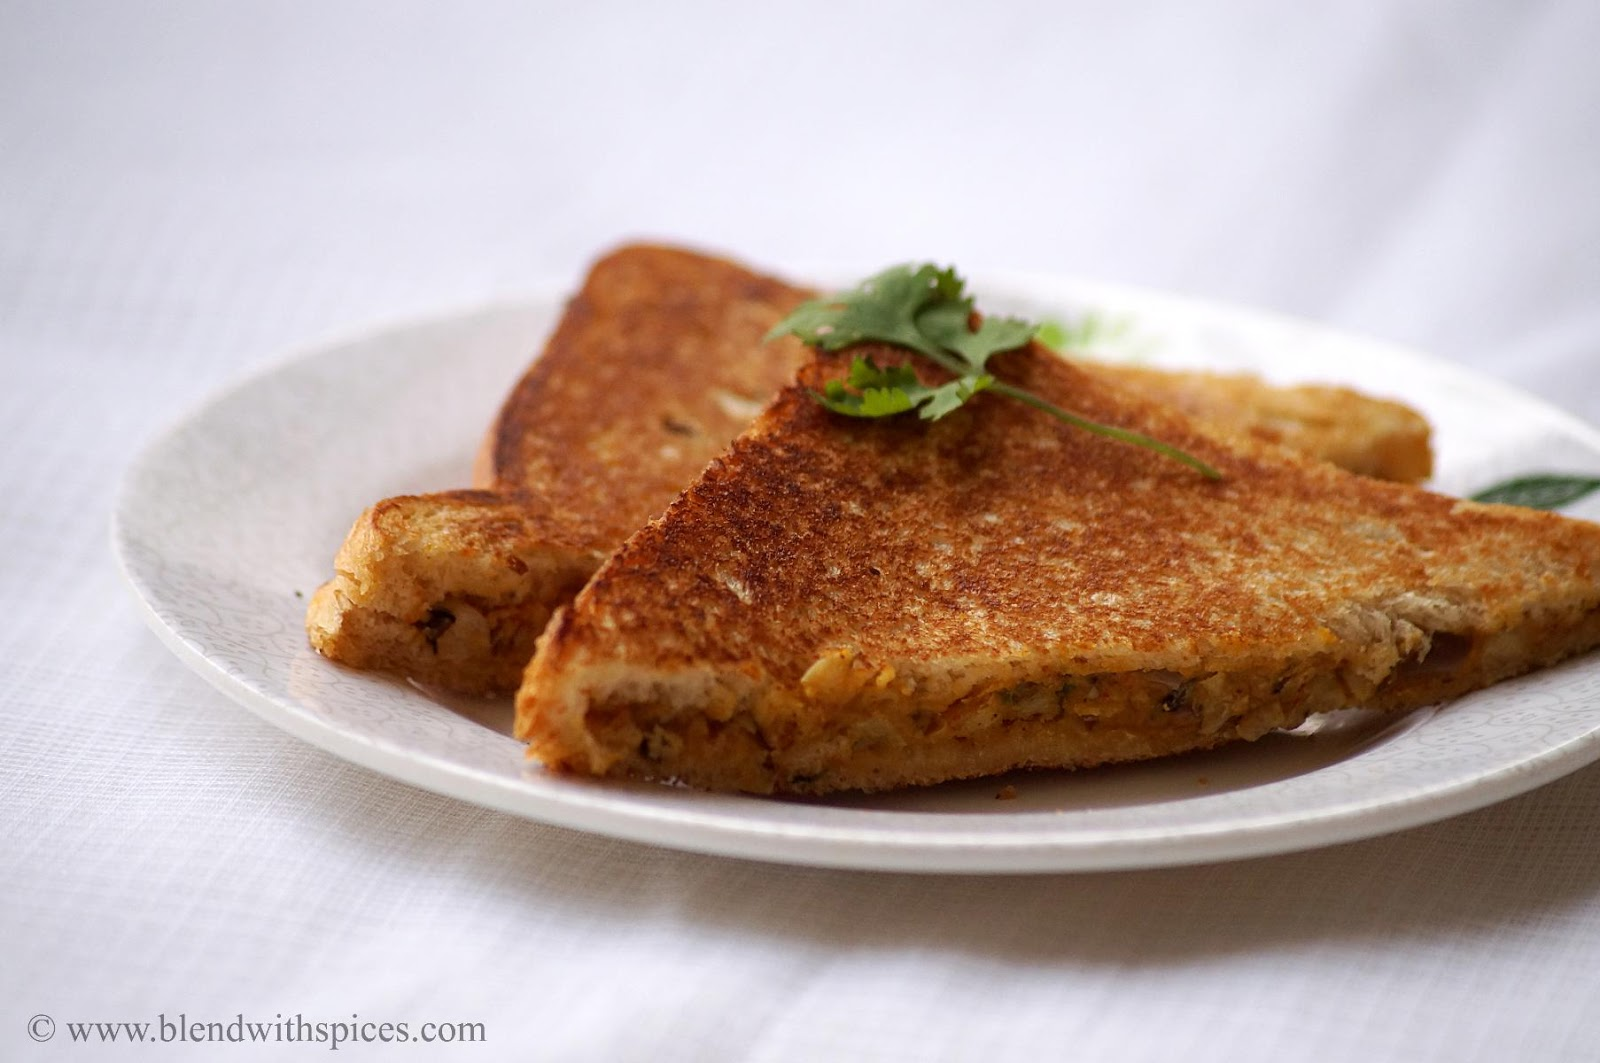 indian style toasted sandwich made with cowpeas